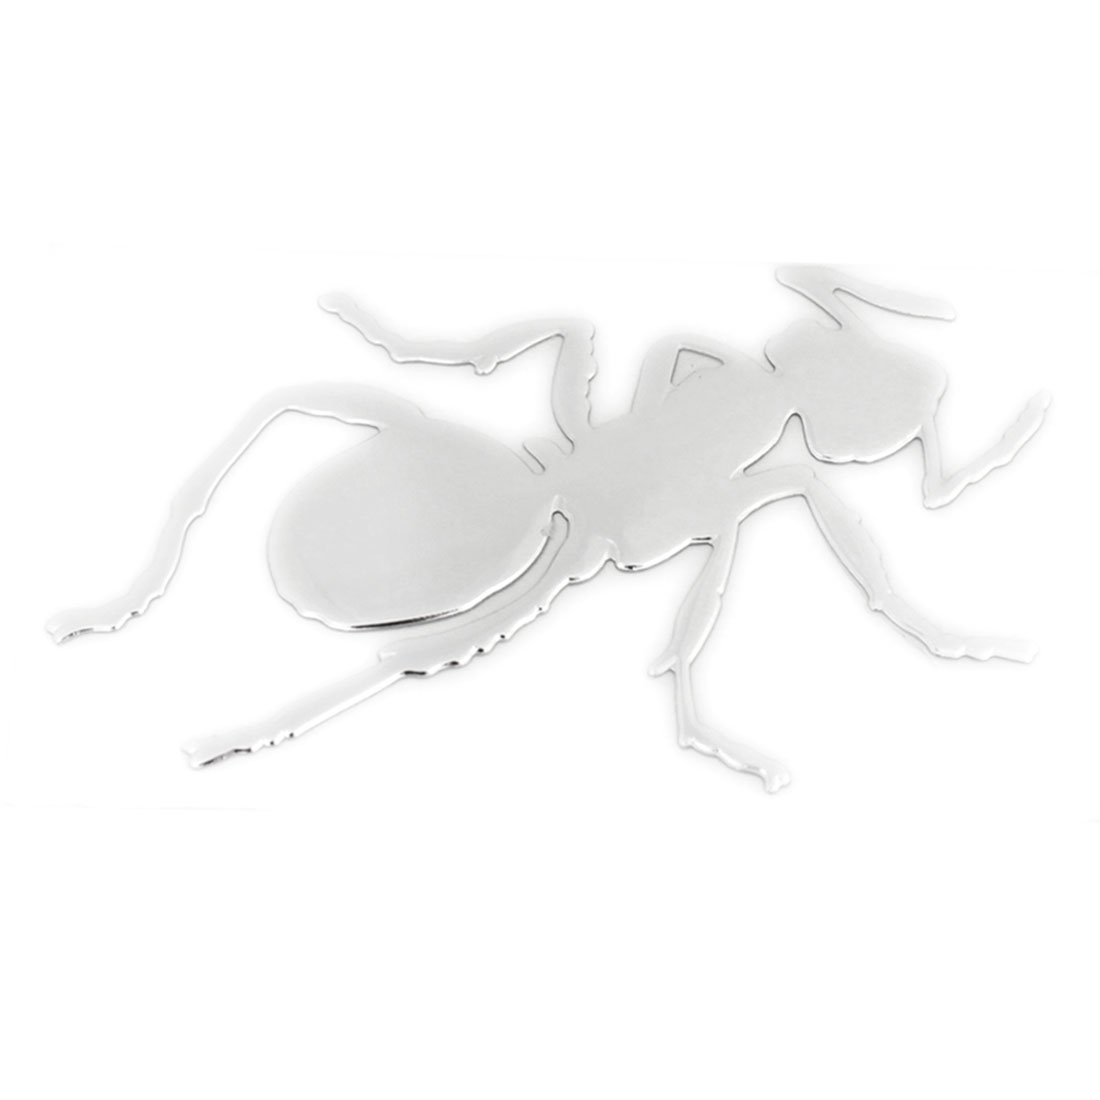 Silver Tone Insect Pattern Plastic Self Adhesive 3D Sticker Decal Ornament for Car